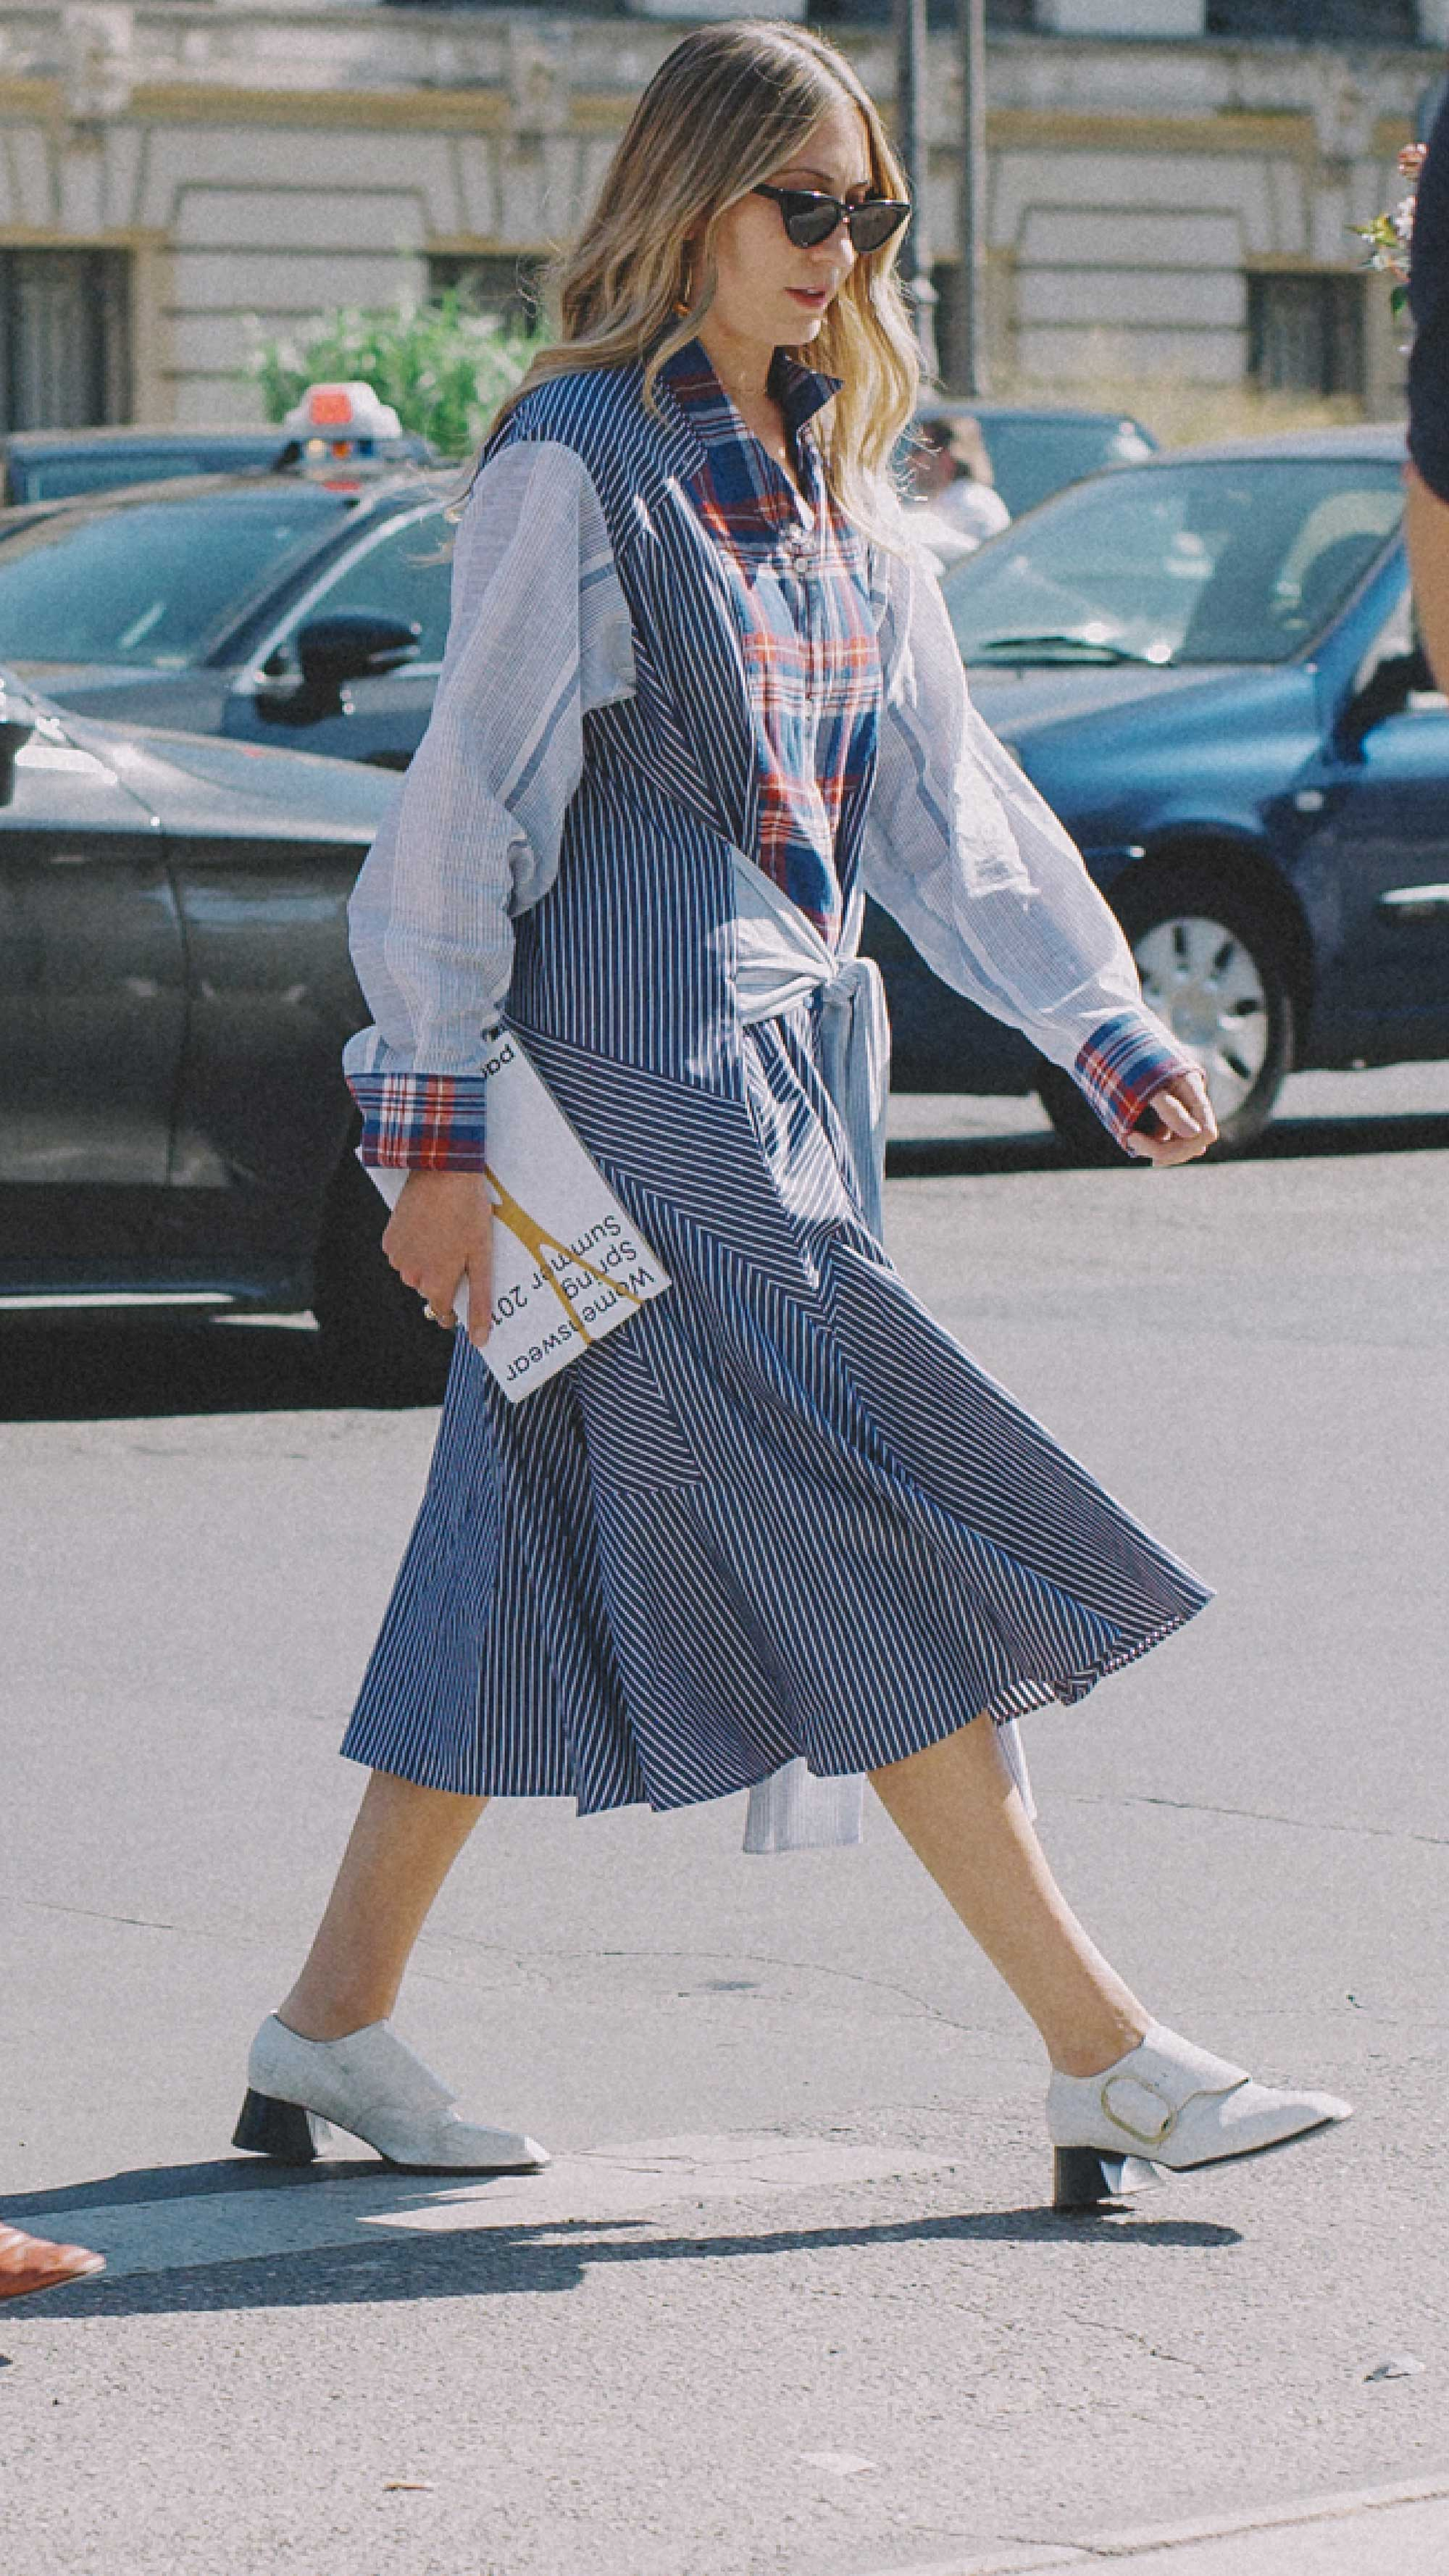 Paris-fashion-street-style-outfits-week-day-four-ss19-32.jpg